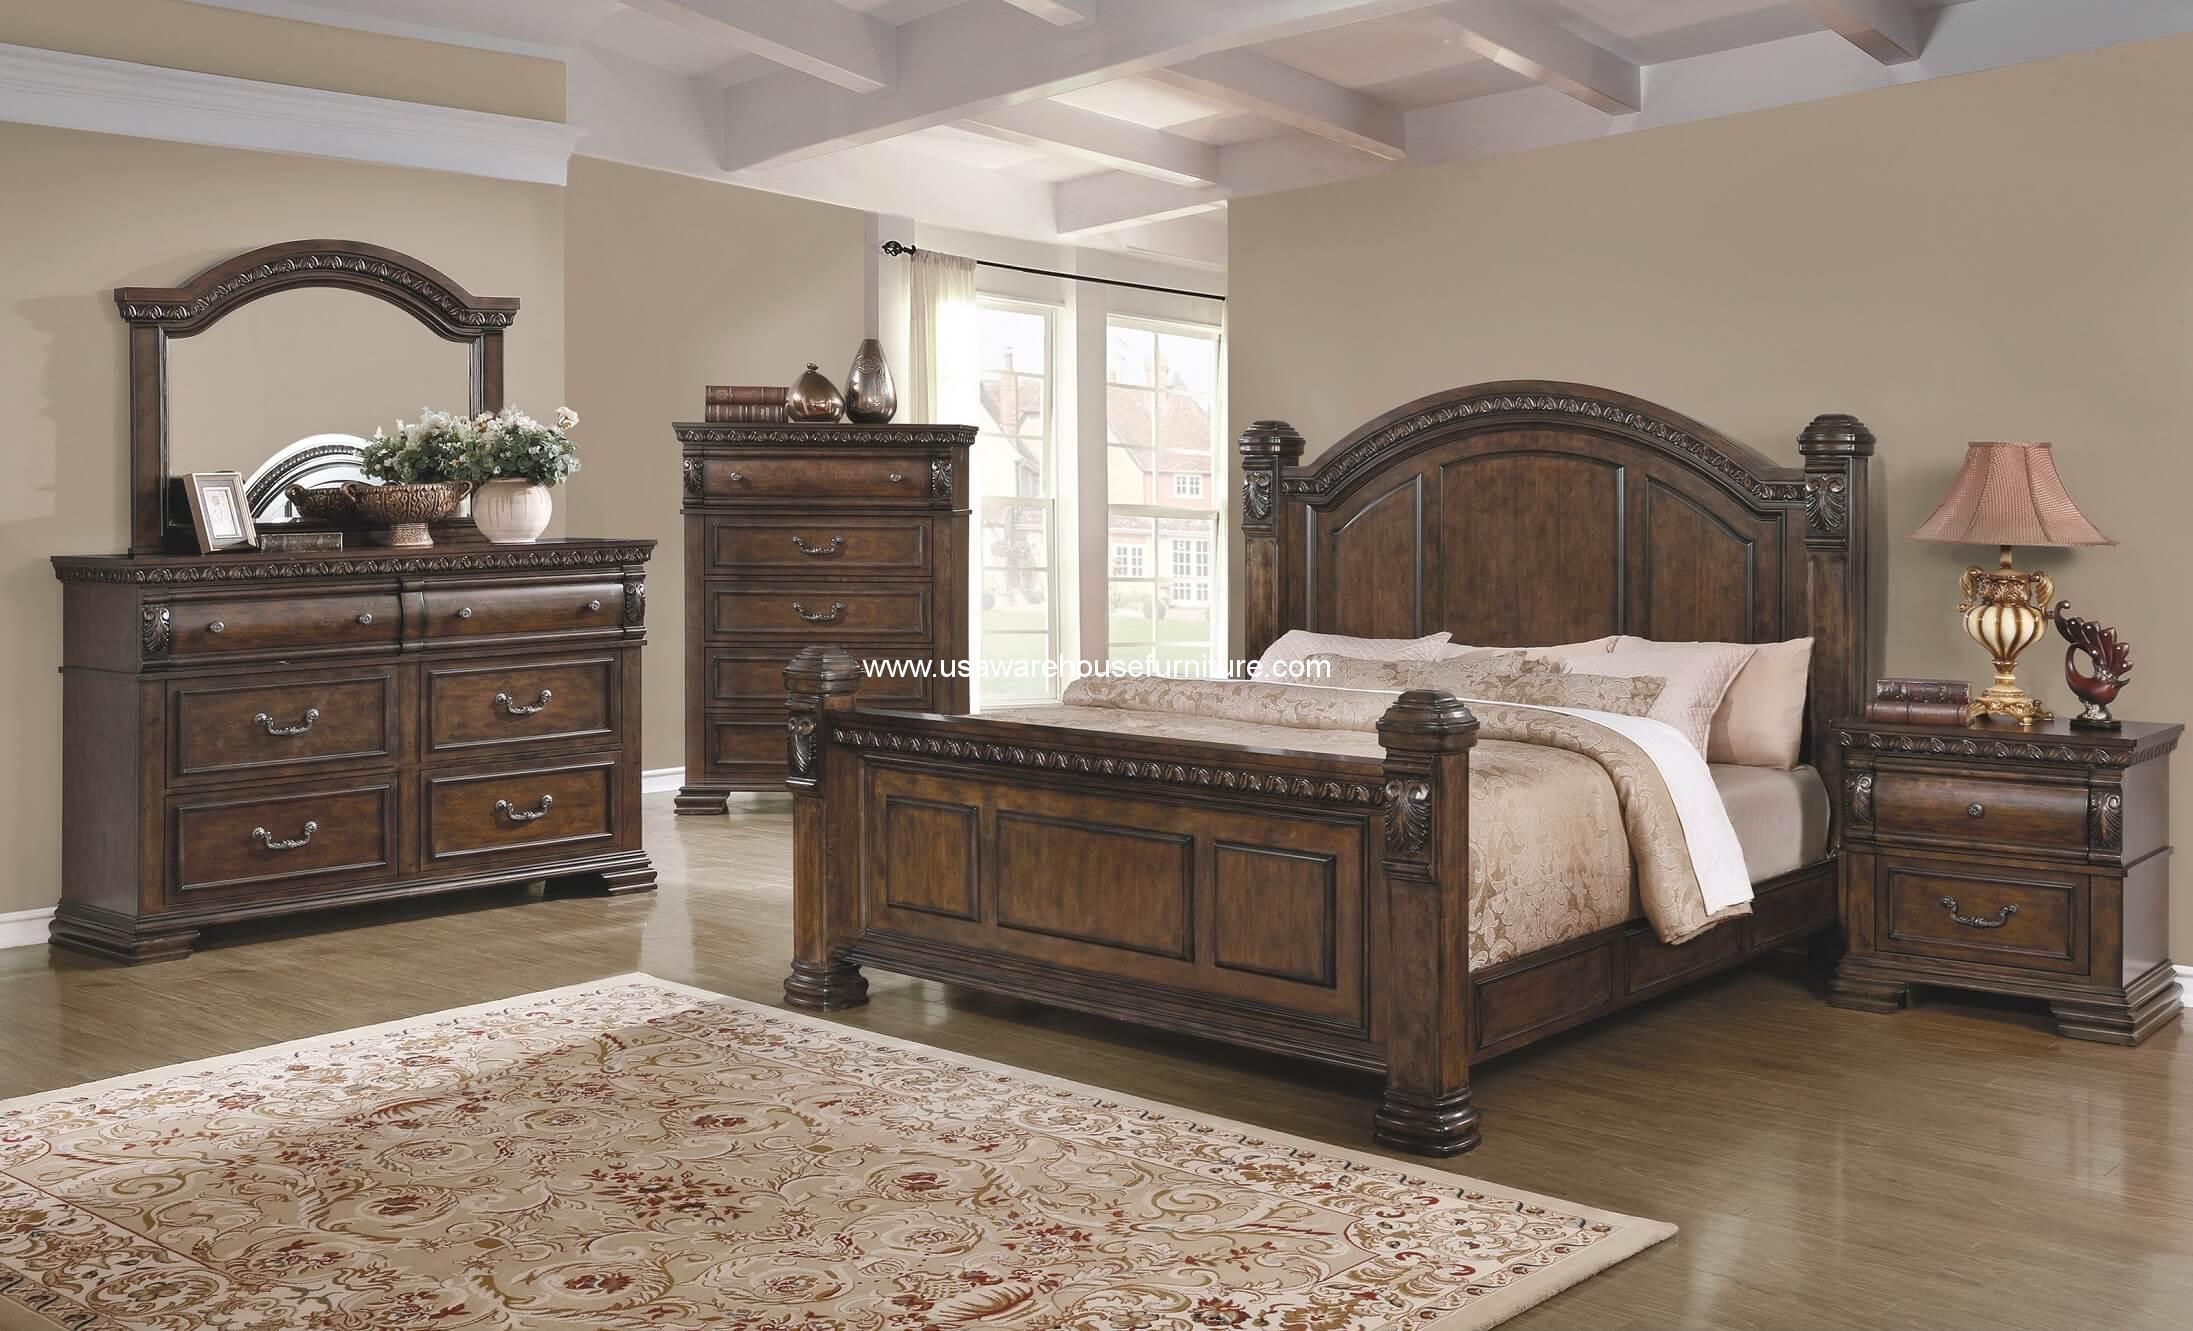 4 Piece Satterfield Bedroom Set Warm Bourbon Finish Usa Warehouse Furniture